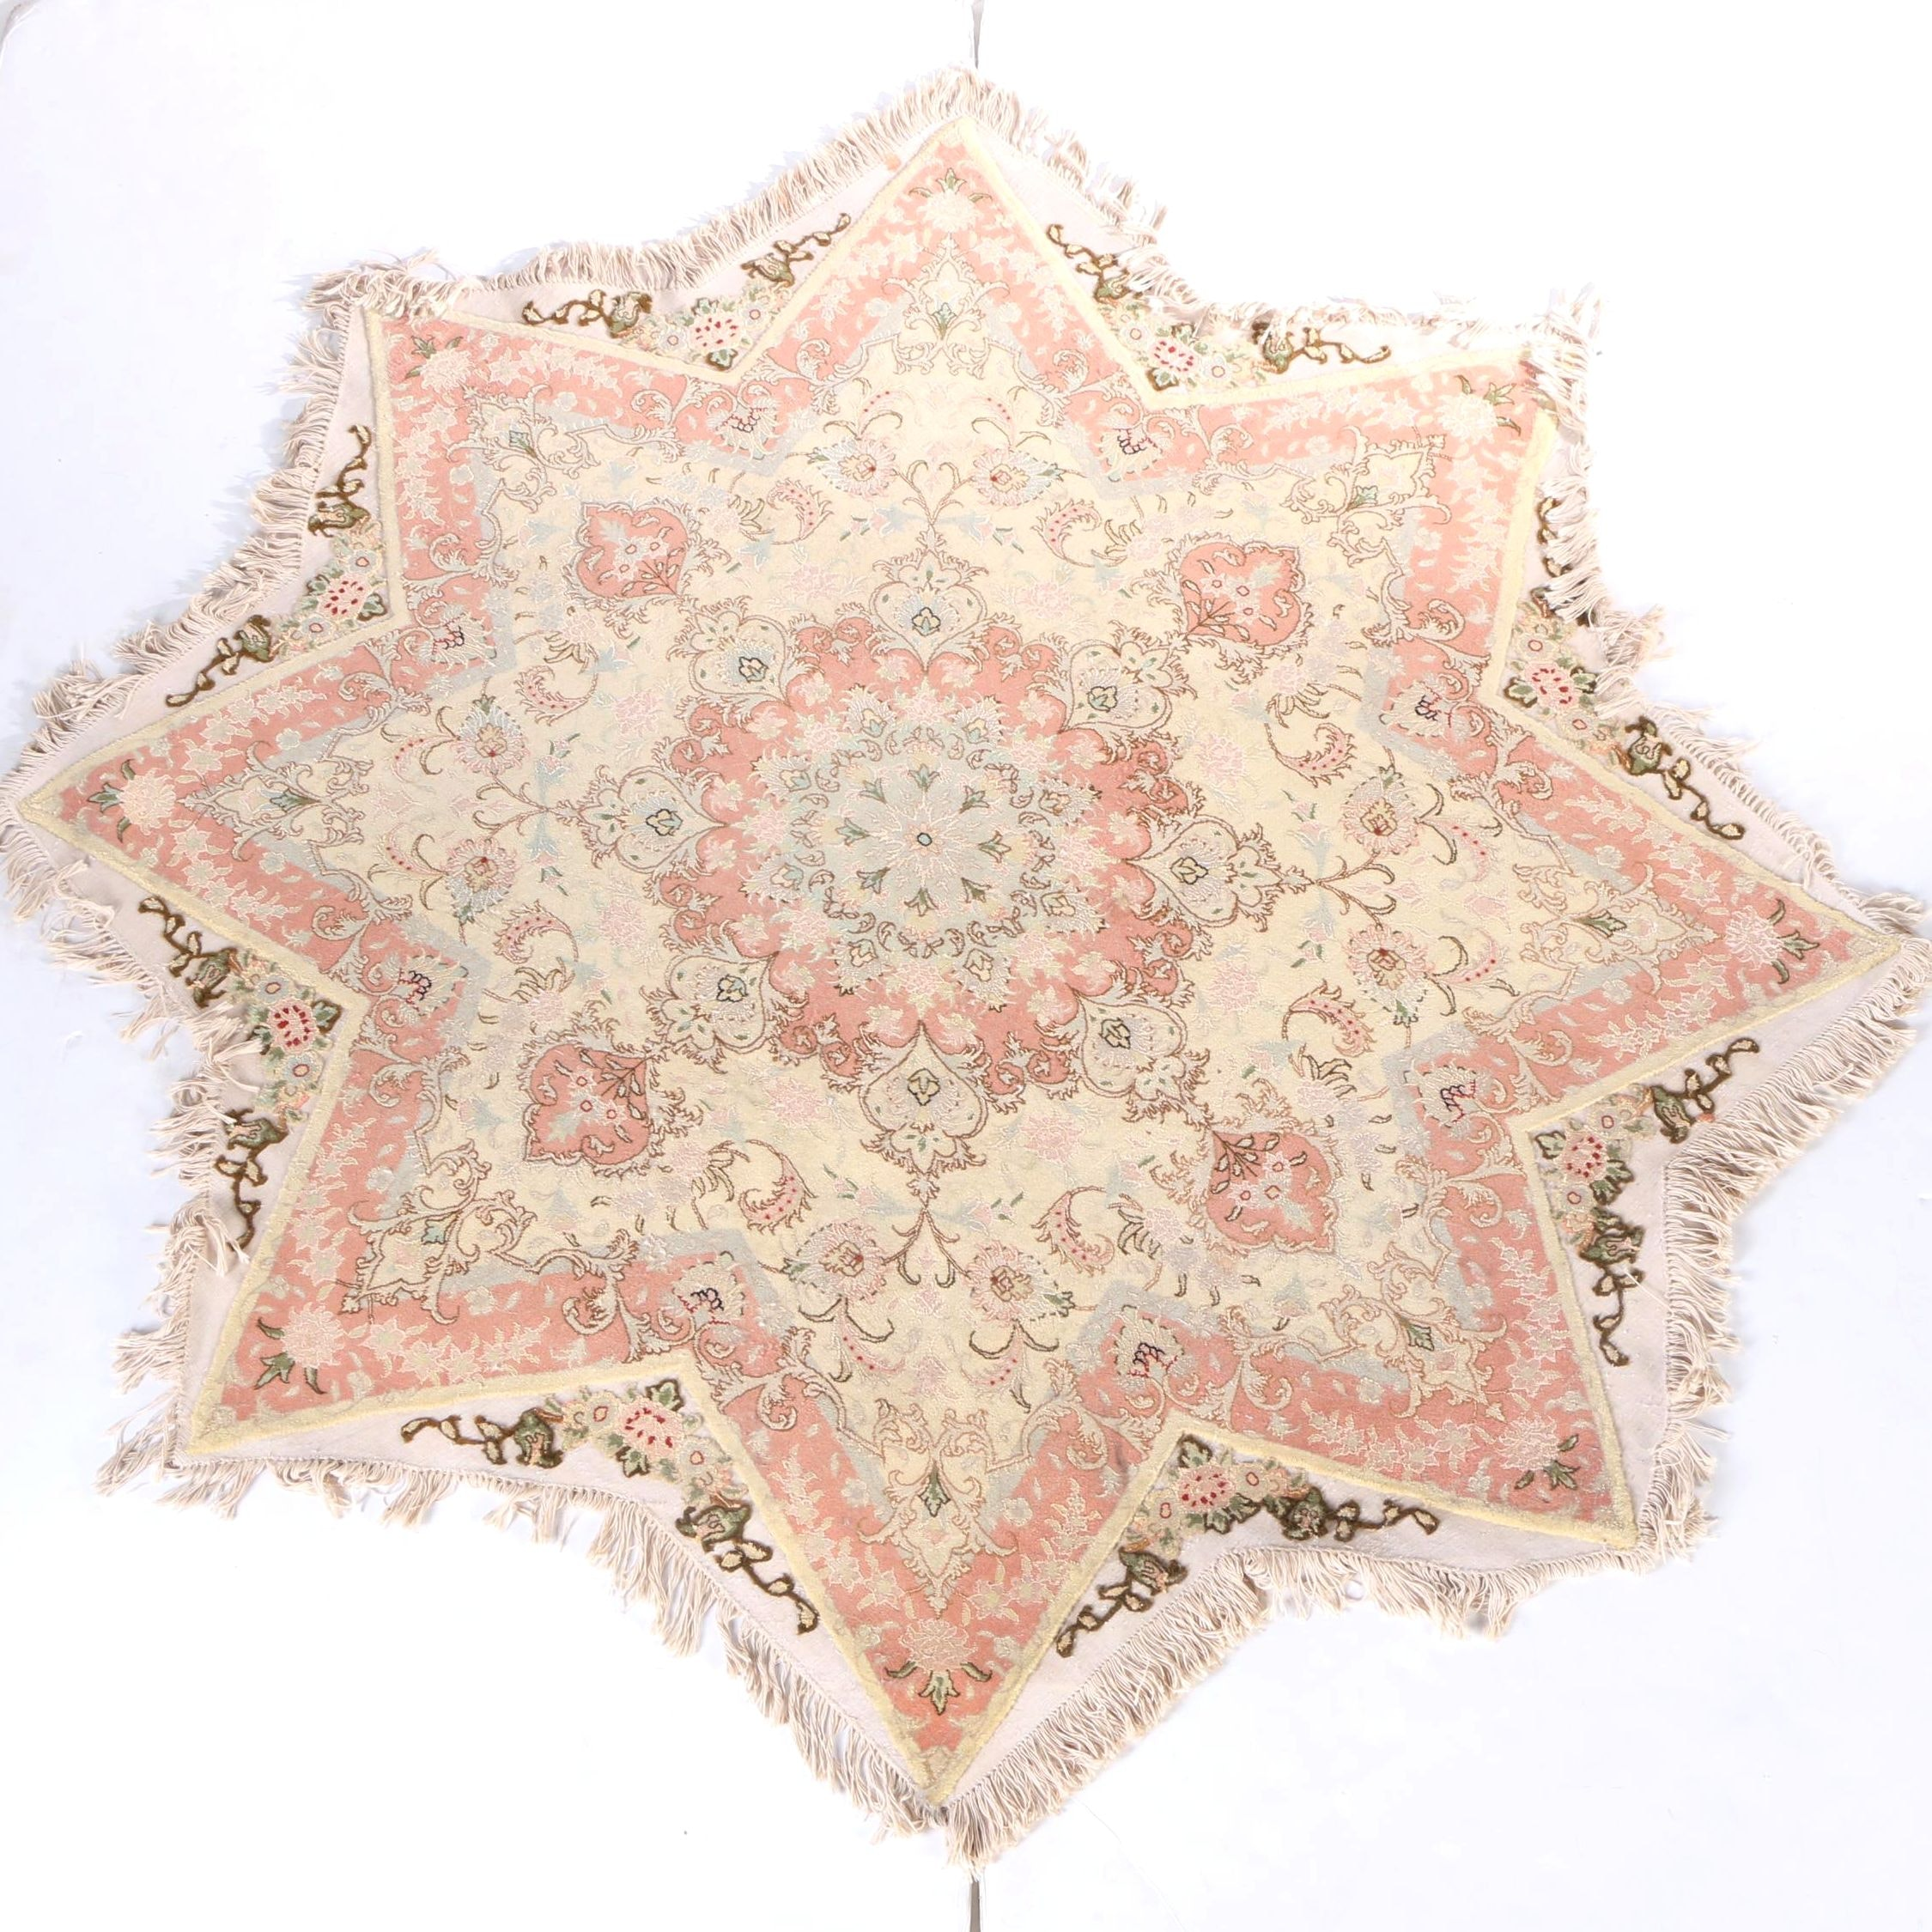 Hand-Knotted Persian Star-Shaped Area Rug